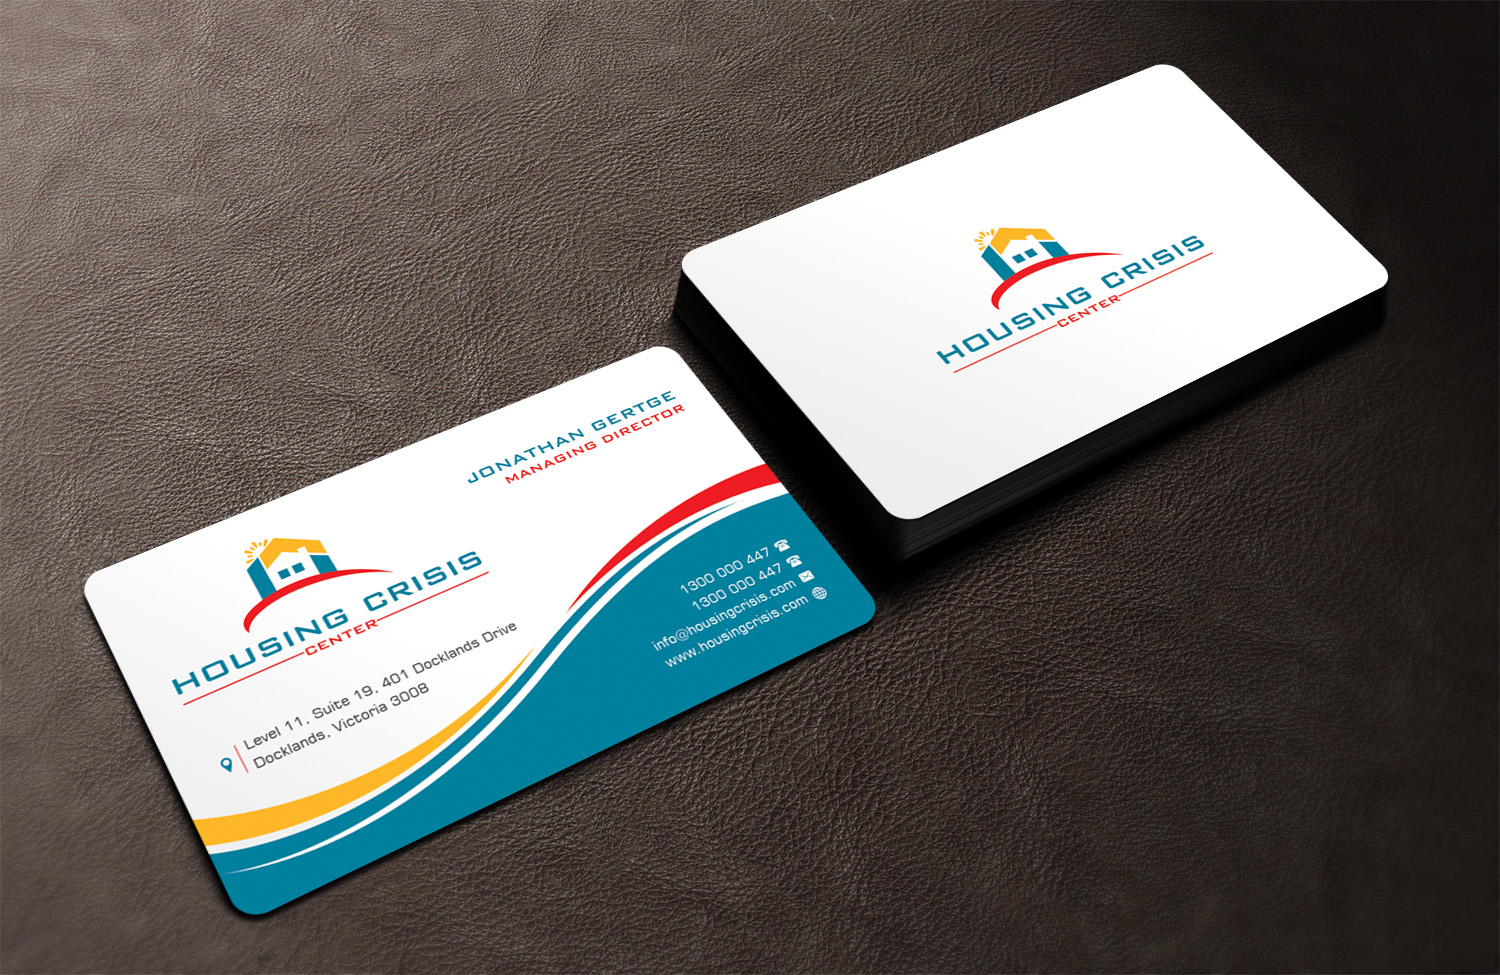 Colorful serious non profit business card design for housing business card design by sandaruwan for housing crisis center design 17942499 colourmoves